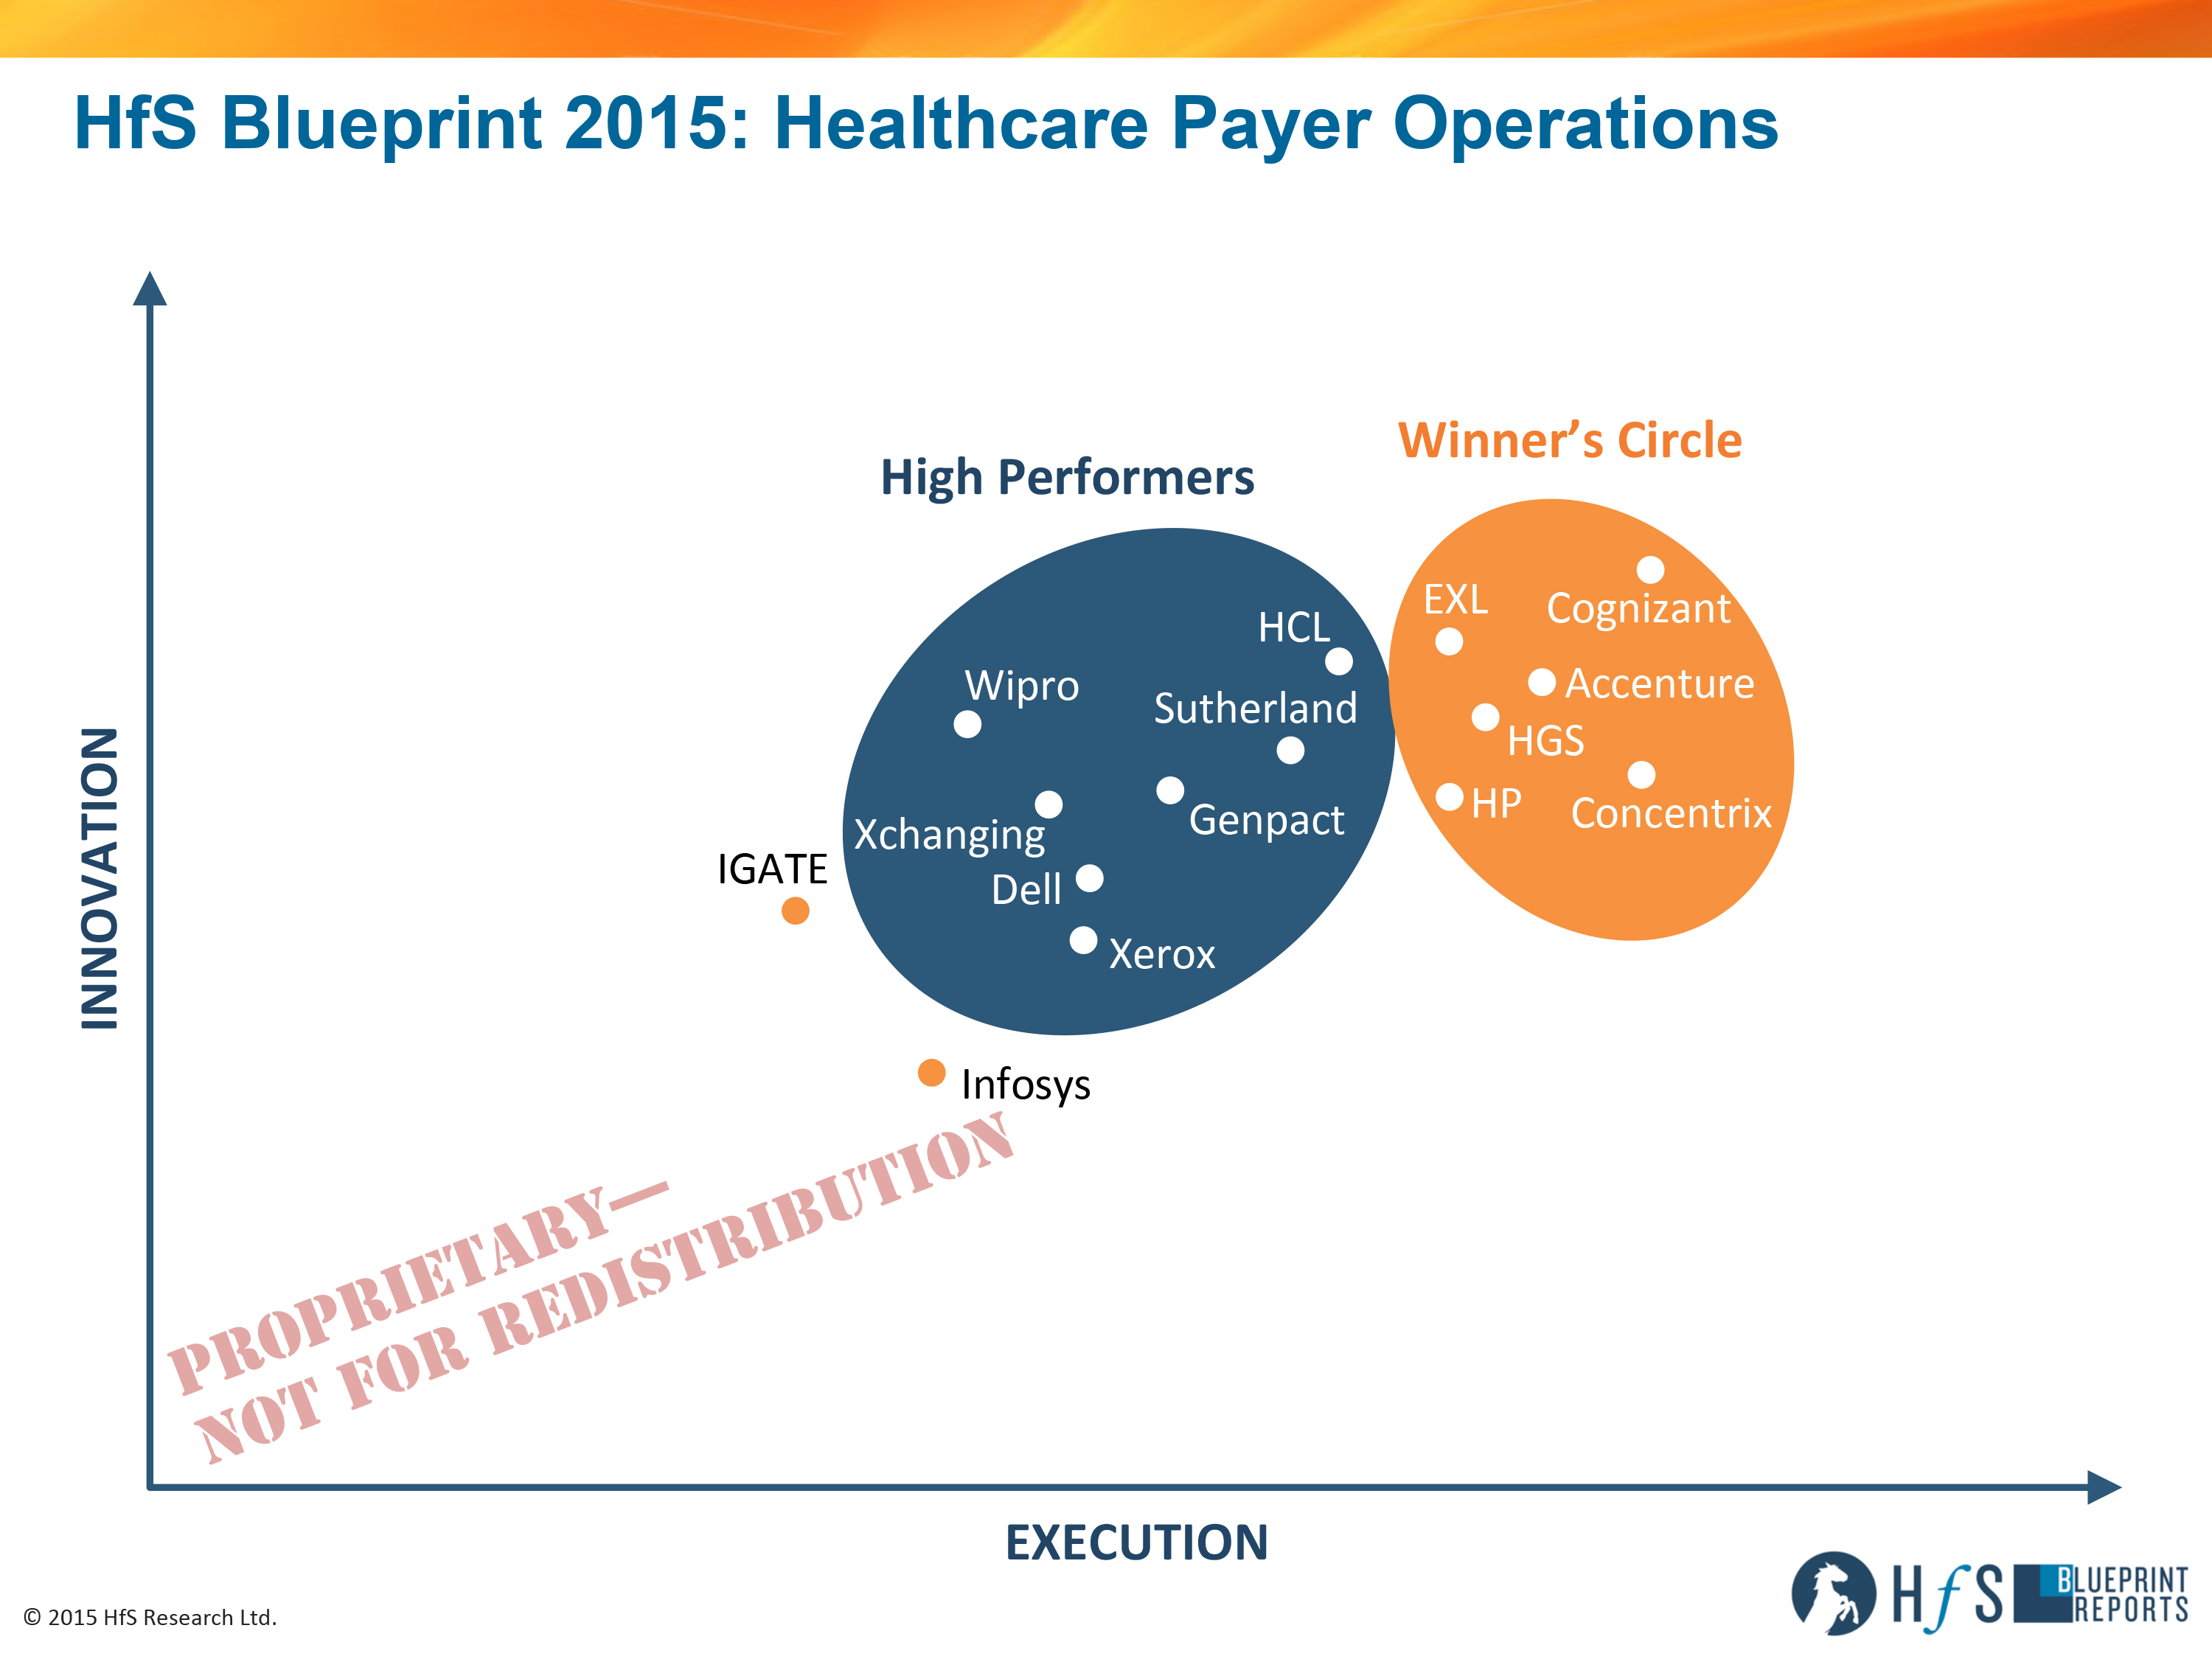 Cognizant accenture exl concentrix hgs and hp are the top rs1509hfs blueprint healthcare payer operations 2015 axis only malvernweather